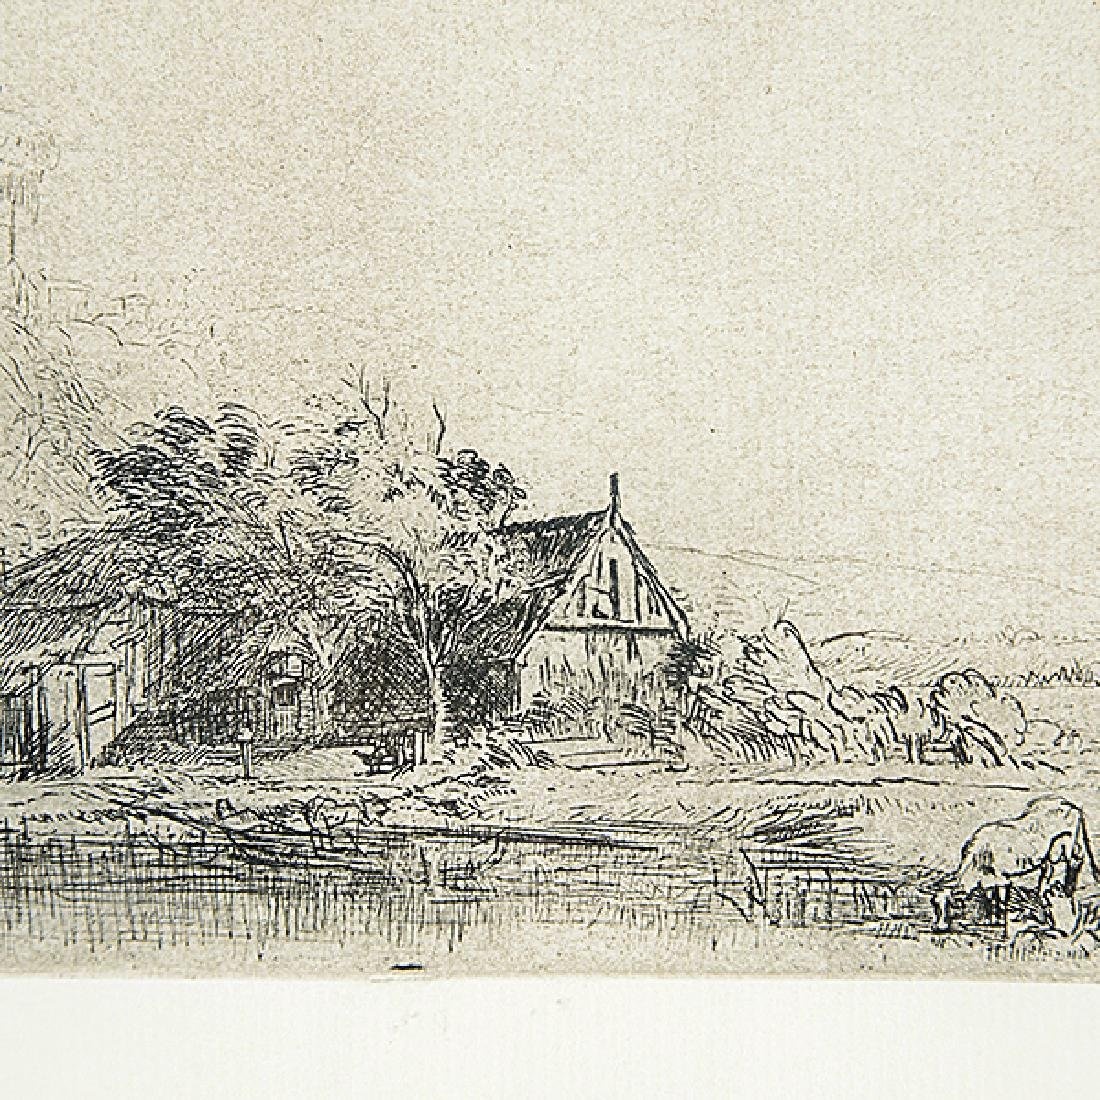 """After Rembrandt """"Landscape with a Cow"""" etching - 2"""